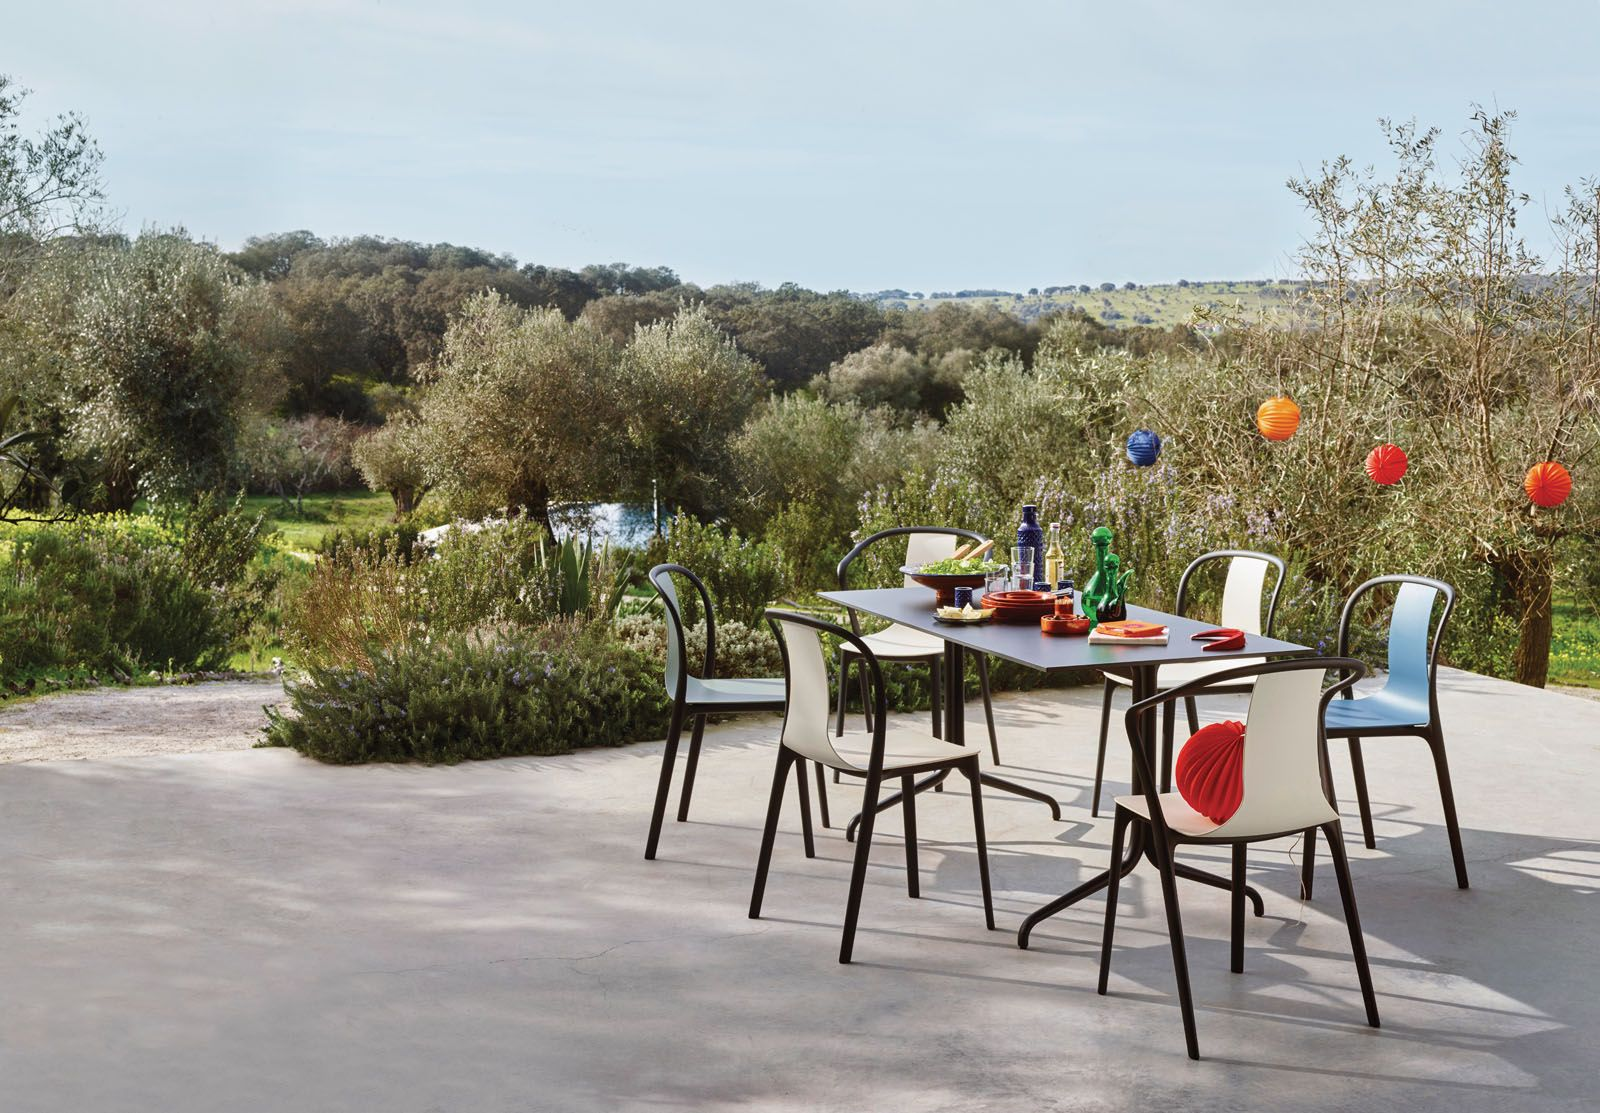 Named after the vibrant Parisian neighbourhood where its designers Ronan and Erwan Bouroullec are based, the Belleville dining range from Vitra is the epitome of chic utilitarianism. Modelled after classic bistro furniture, the table has cast aluminium legs with a powder-coated finish, while the chair's plastic structural frame and seat add to its fuss-free aesthetic.